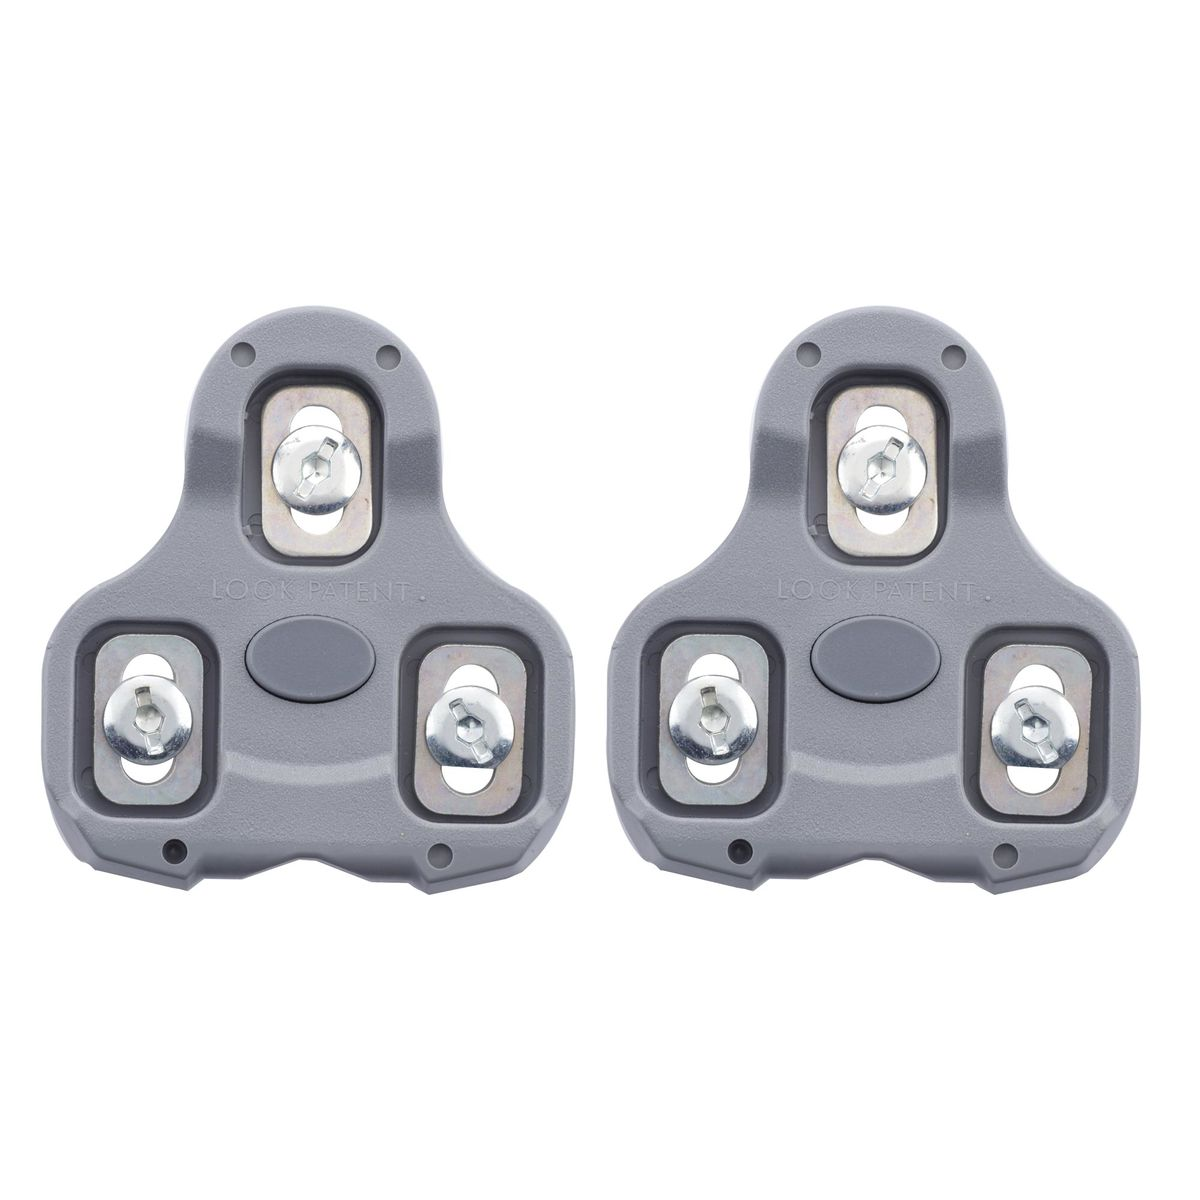 Look KéO cleats ± 2,25° angular float | Pedal cleats